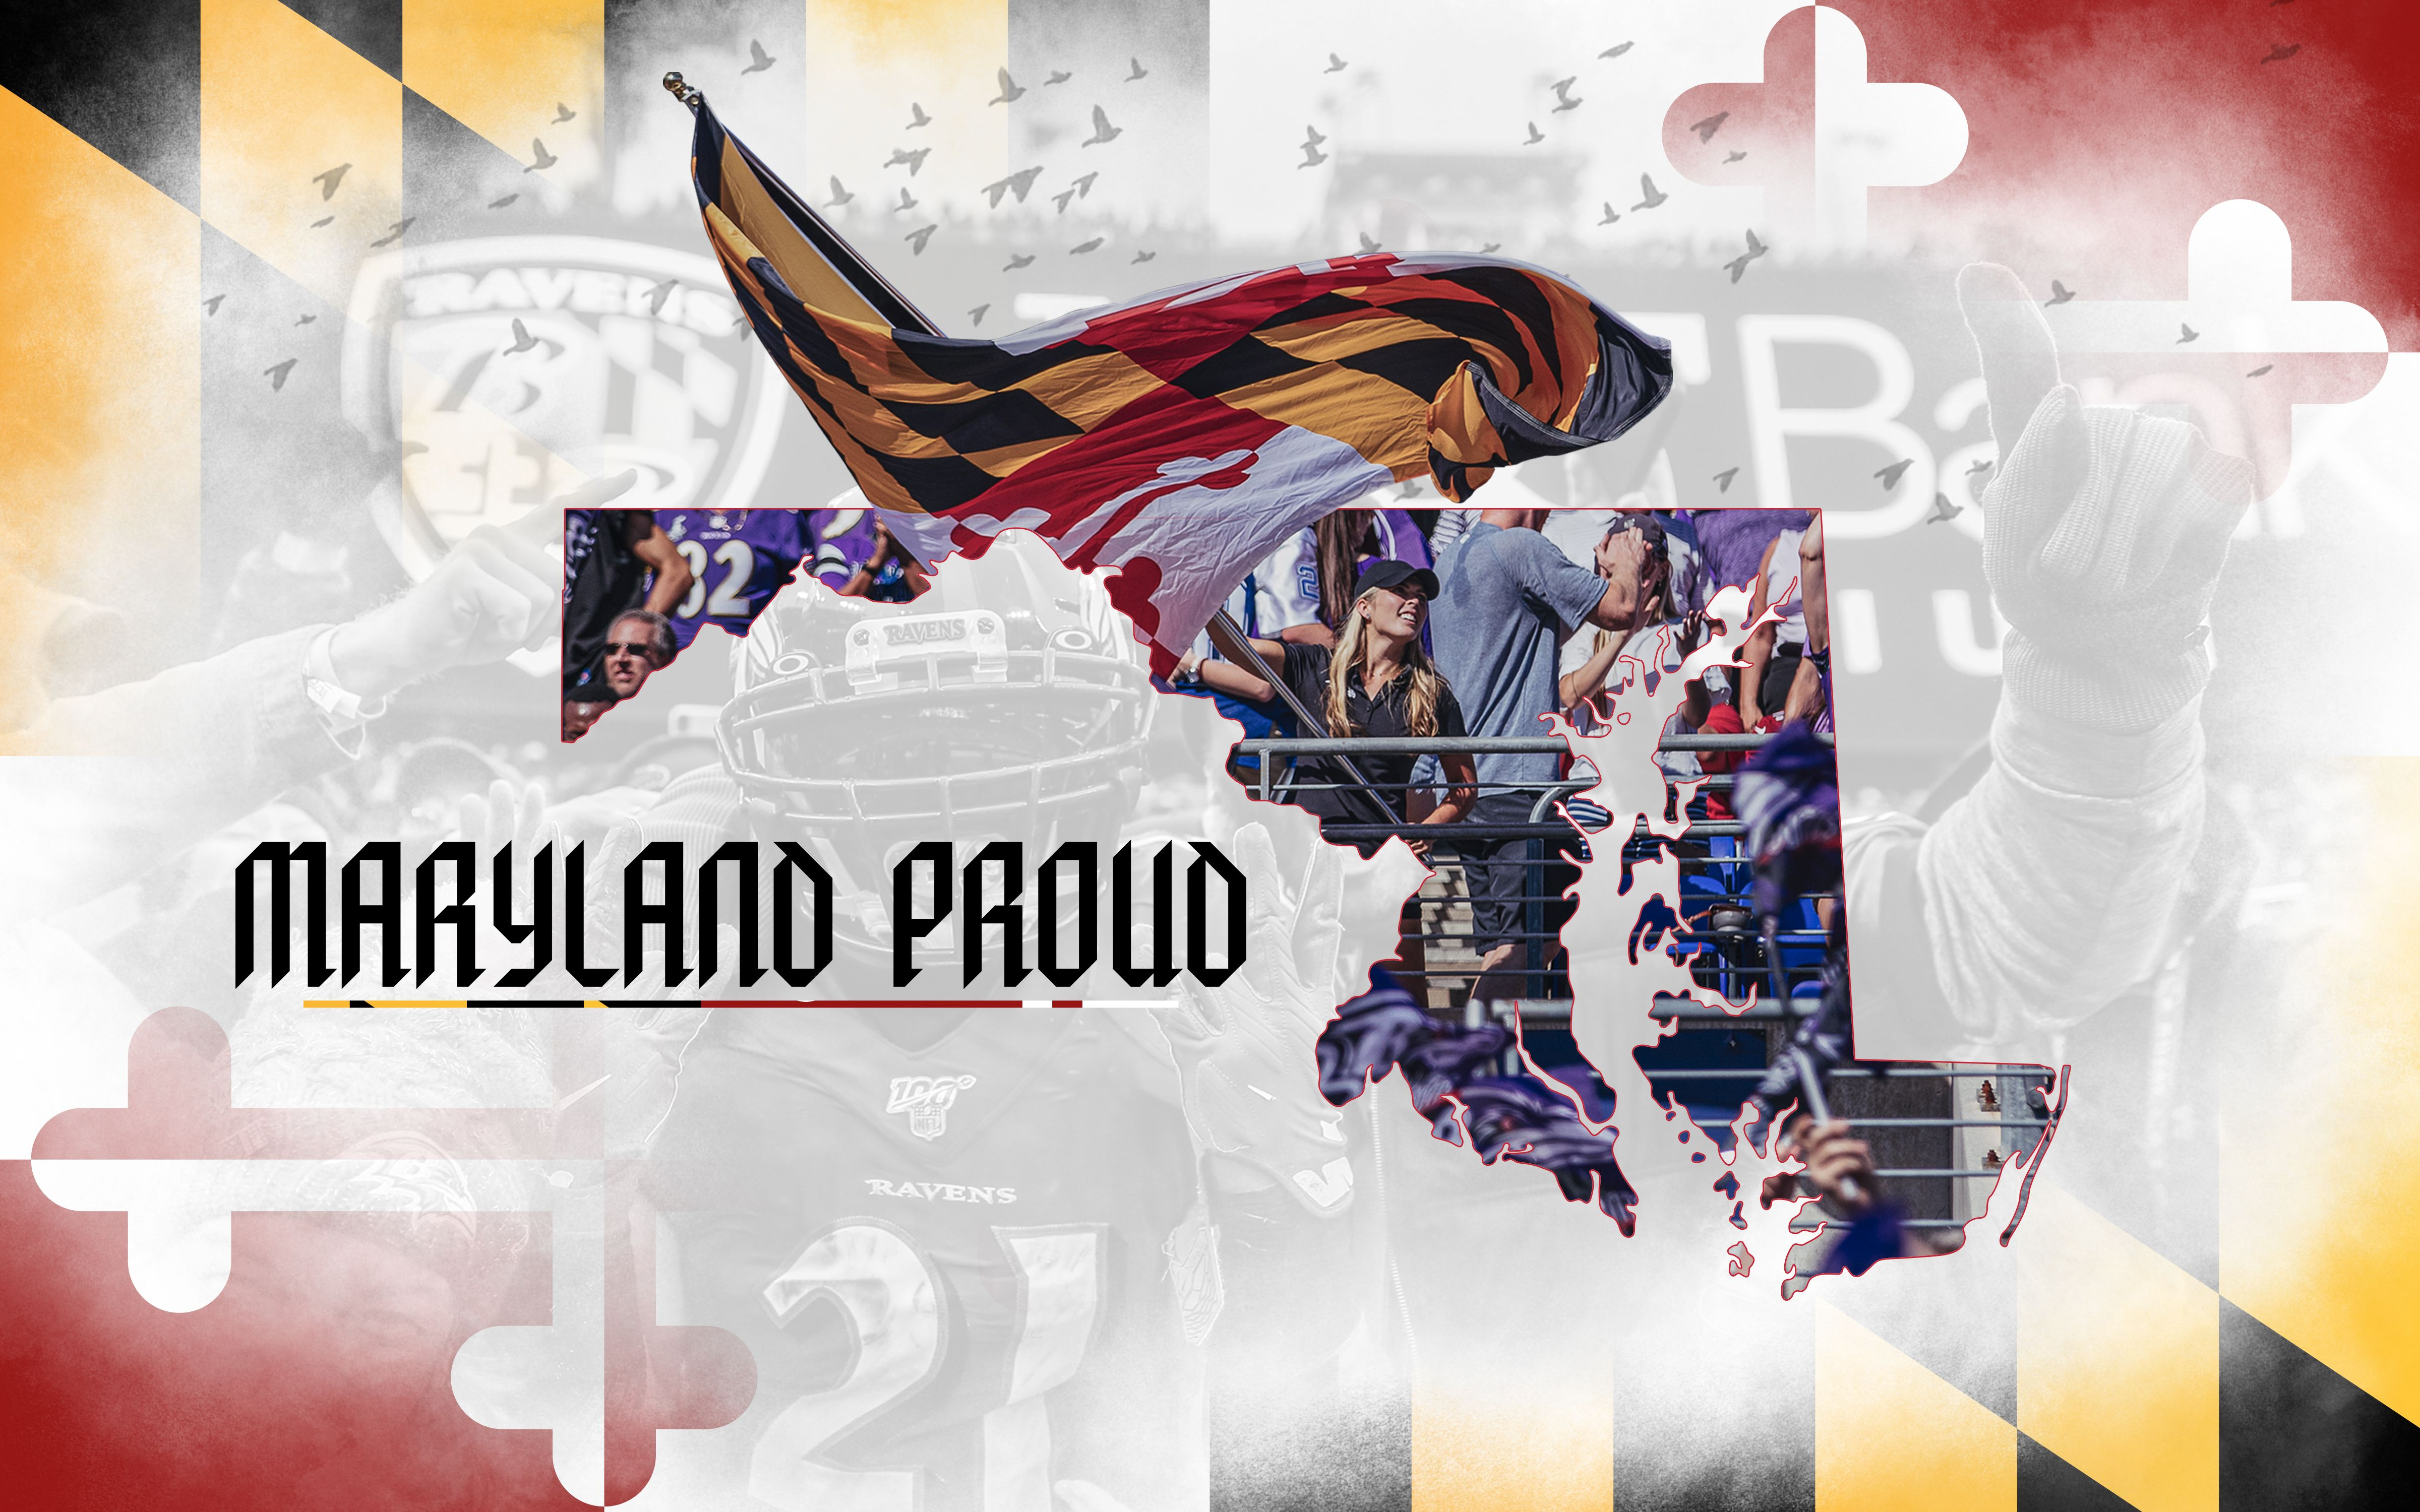 Maryland Proud Desktop Wallpaper